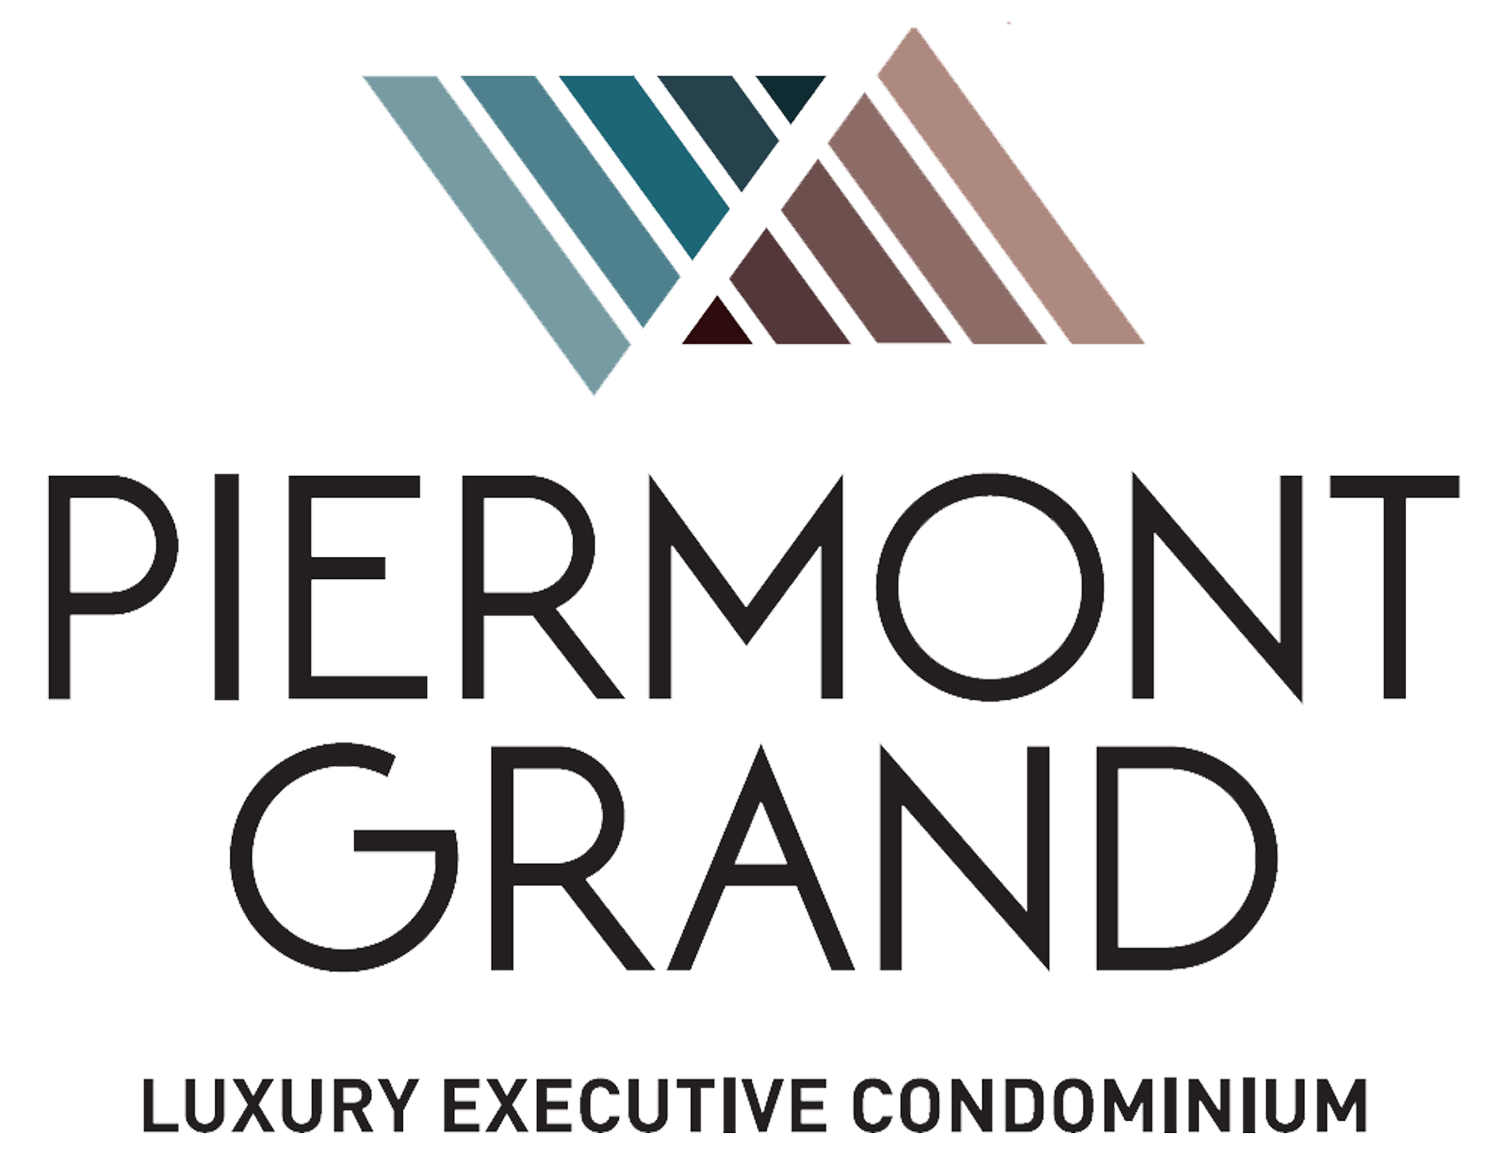 piermont-grand-ec-logo